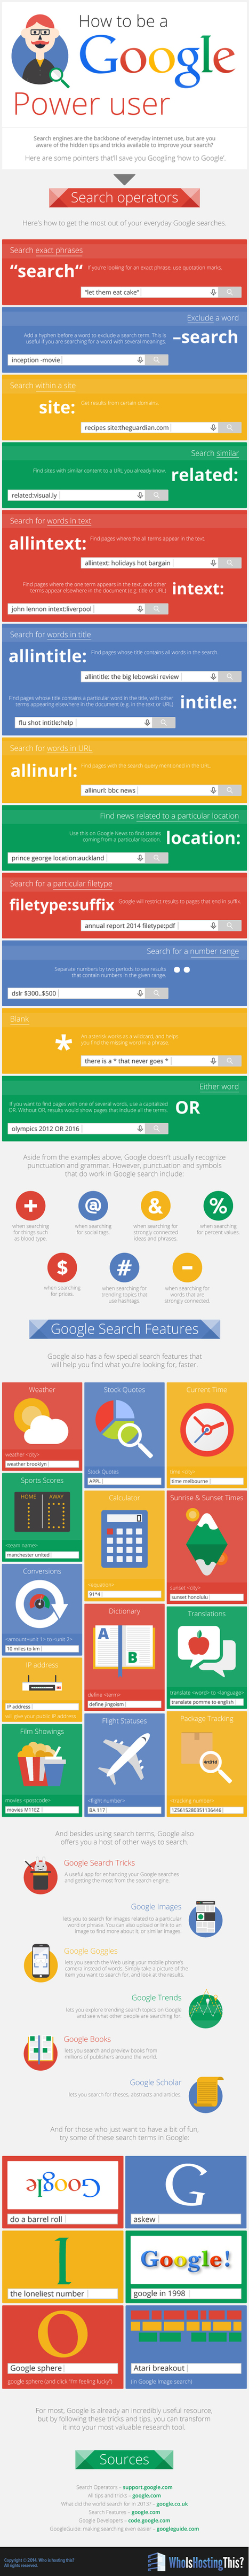 Little Known Ways To Power Your Google Search (Infographic) | wilmington school libraries | Scoop.it